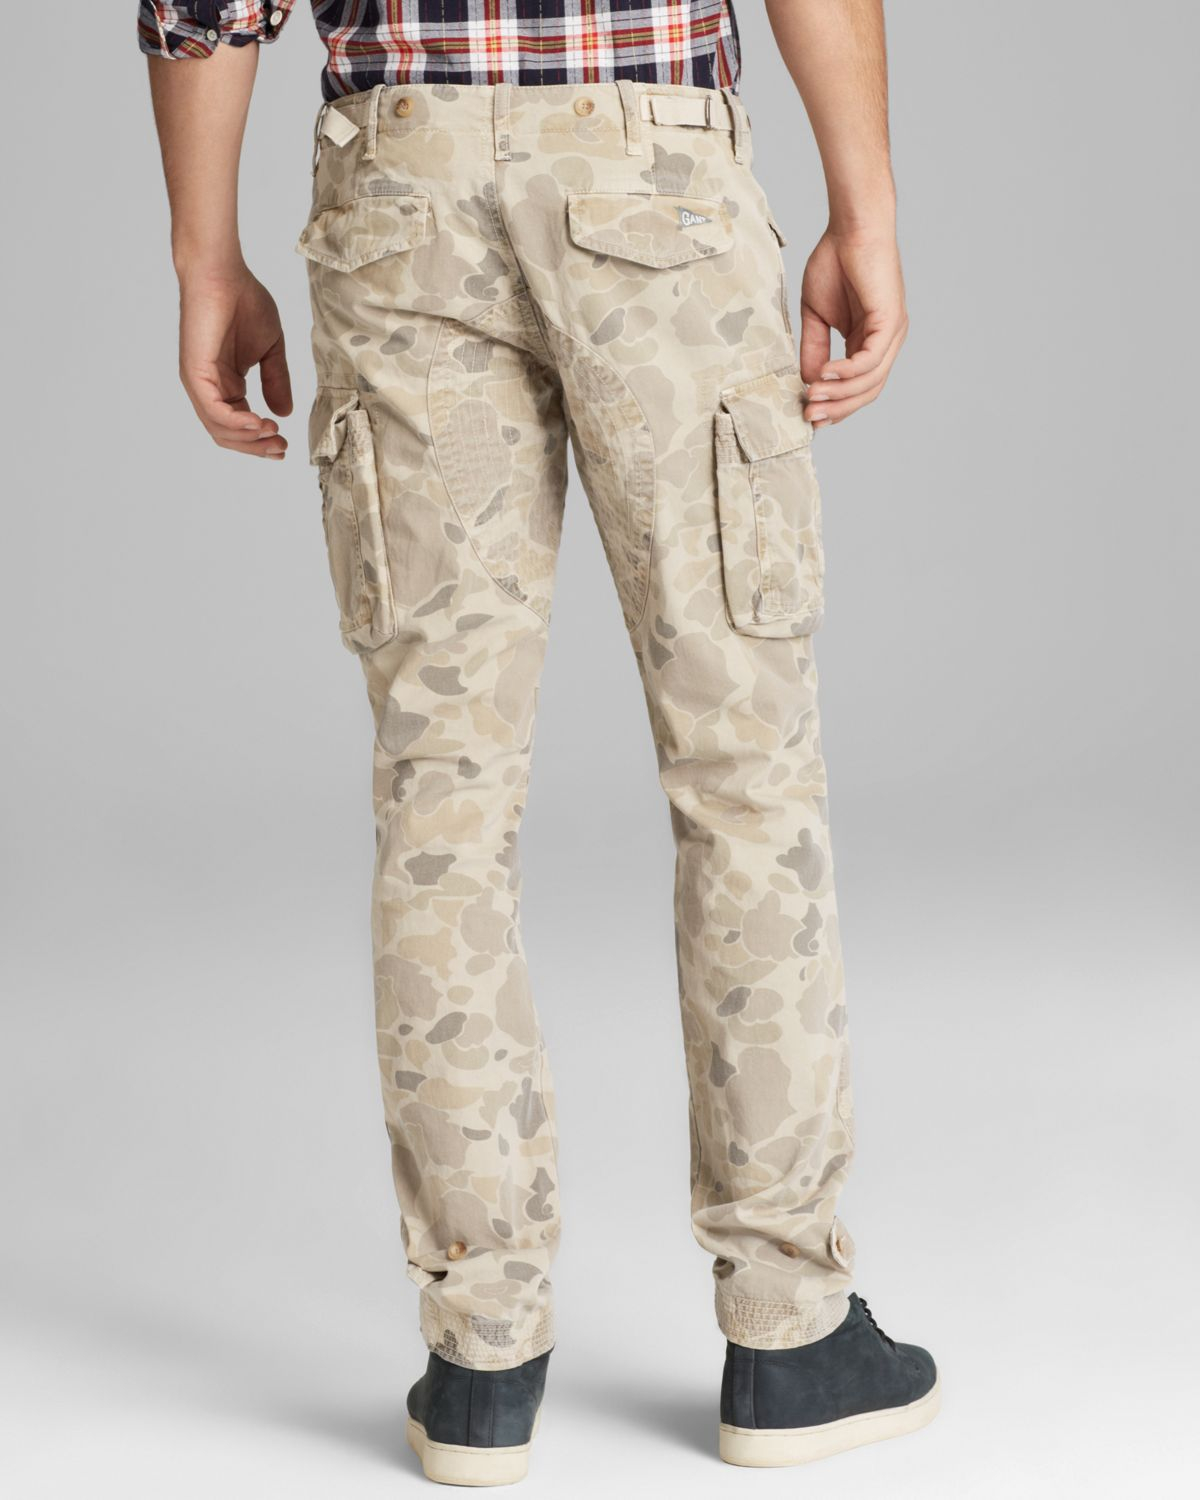 Shop Urban Outfitters for the newest arrivals in men's pants. Sign up for UO Rewards and get 10% off your next purchase. Slim Fit (32) Jogger (23) Track Pants (23) Skinny Fit (11) Vintage Woodland Camo Cargo Pant $ Quick Shop. Vintage Overdyed Camo Fatigue Pant $ Quick Shop.